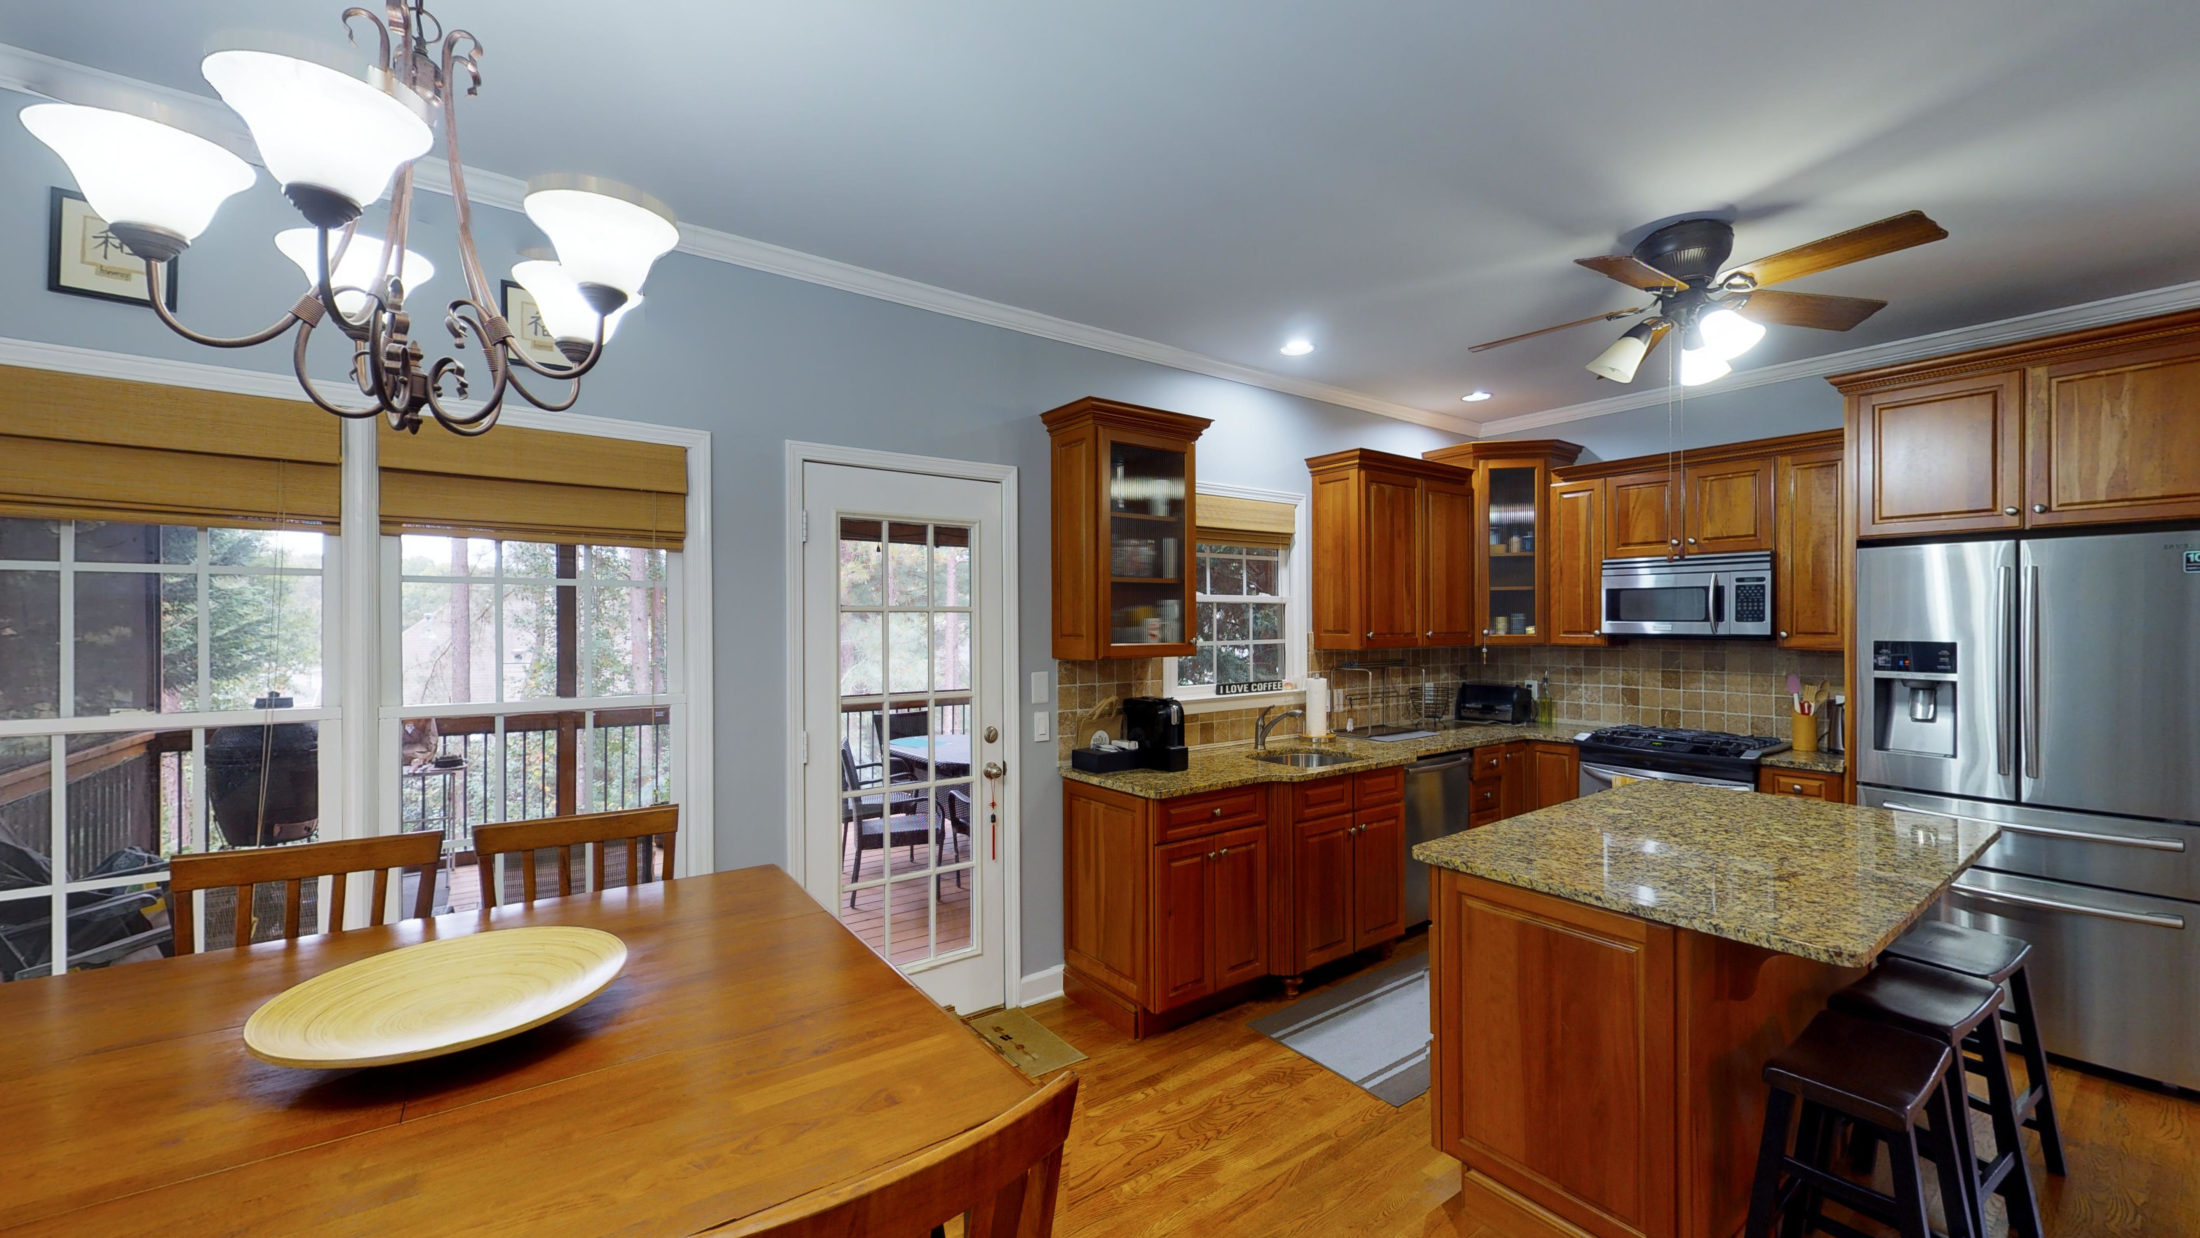 New Listing in Johns Creek